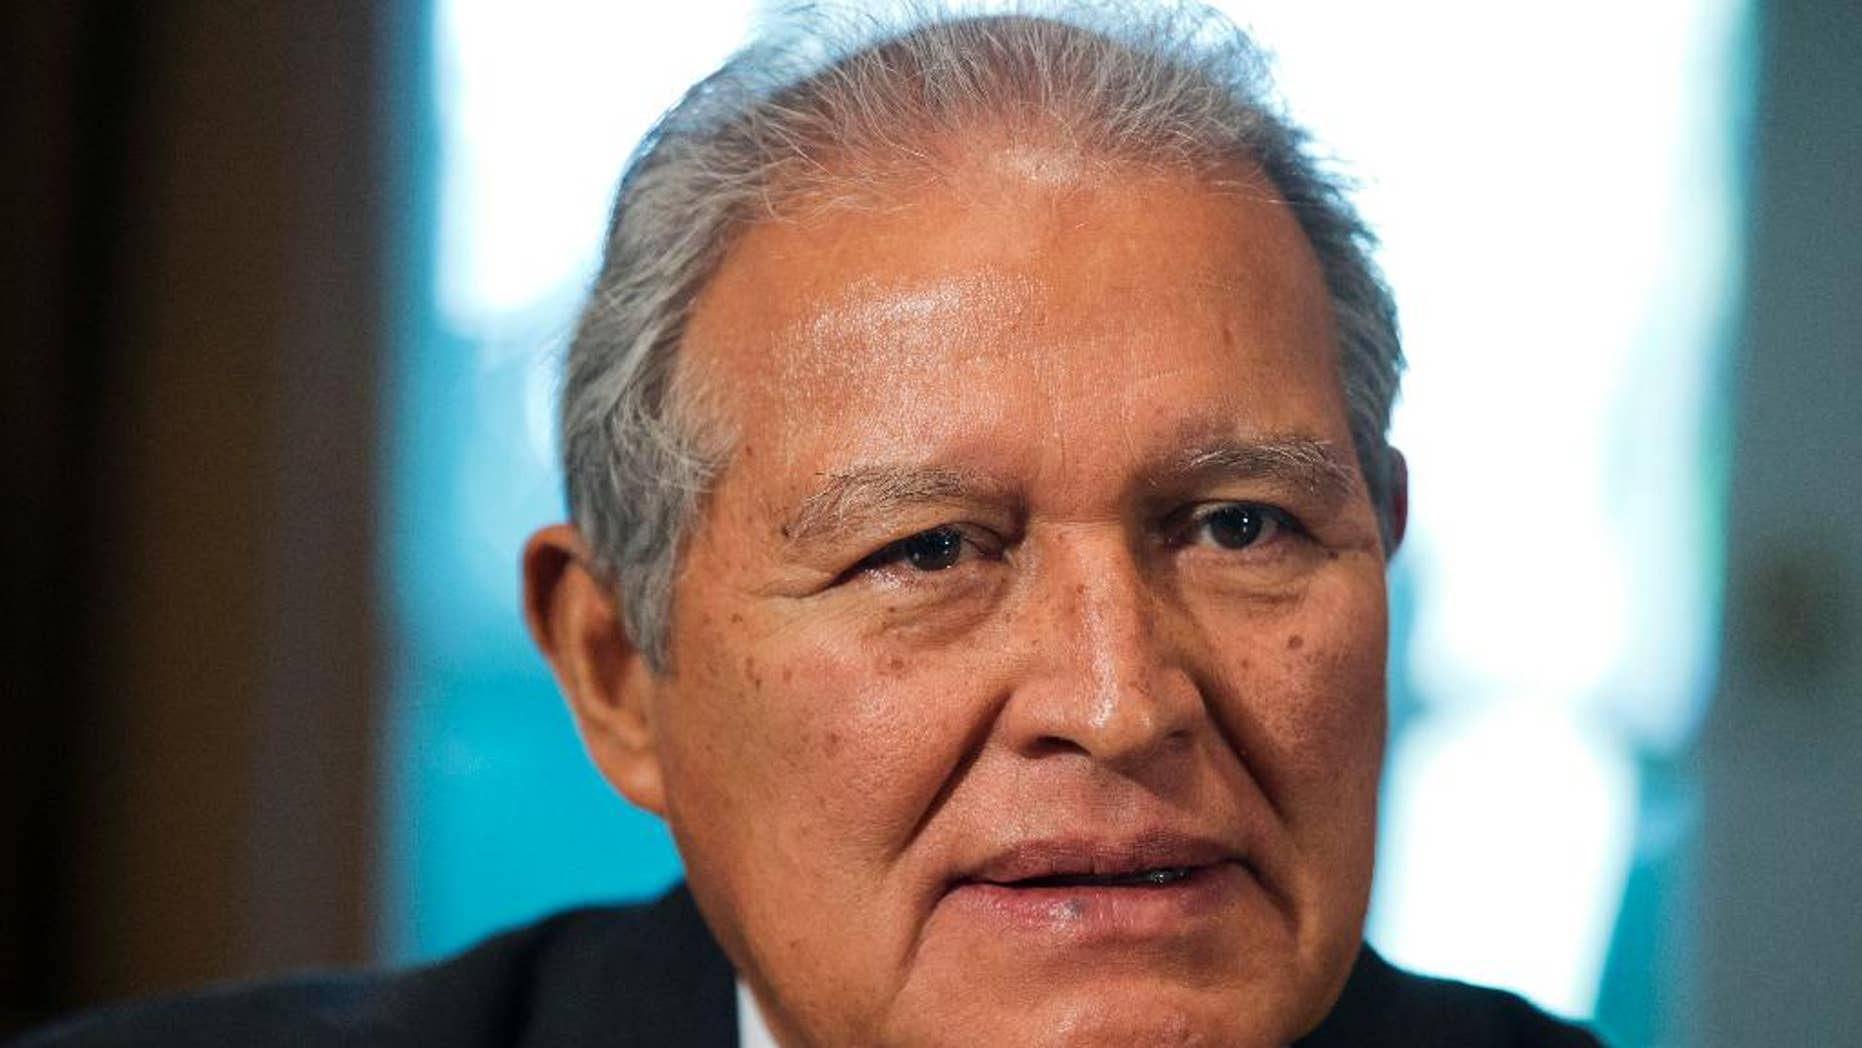 FILE - In this July 25, 2014 file photo, El Salvador's President Salvador Sanchez Ceren, listens as U.S. President Barack Obama speaks to the media, in the Cabinet Room of the White House, in Washington. Ceren on Saturday, Aug. 29, 2015, praised a local Supreme Court ruling declaring the gangs known as maras terrorists. ìNow the persecution of crime will be more effective, the gangs now are terrorists and all the force of the law will be applied against them.î He said it would also make it easier to prosecute those who collaborate with the gangs. (AP Photo/File)